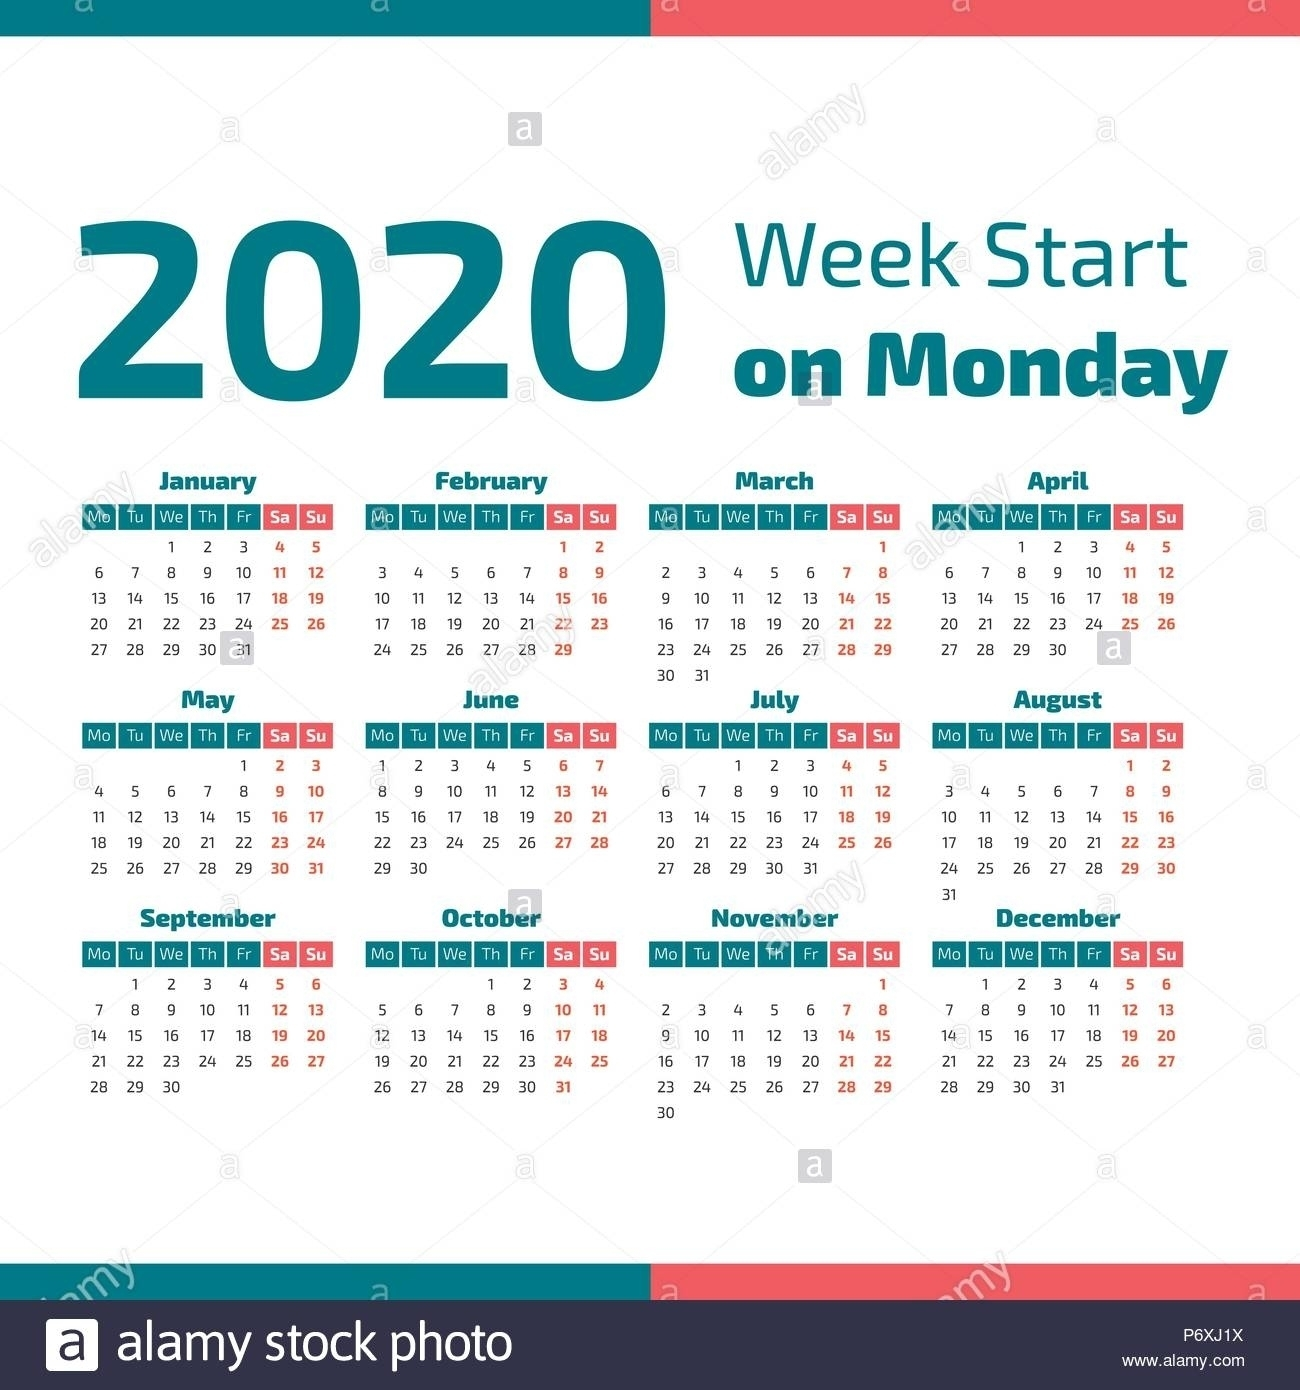 Perky 2020 Calendar Starting On Monday • Printable Blank Calendar within 2020 Calendar Starting With Monday